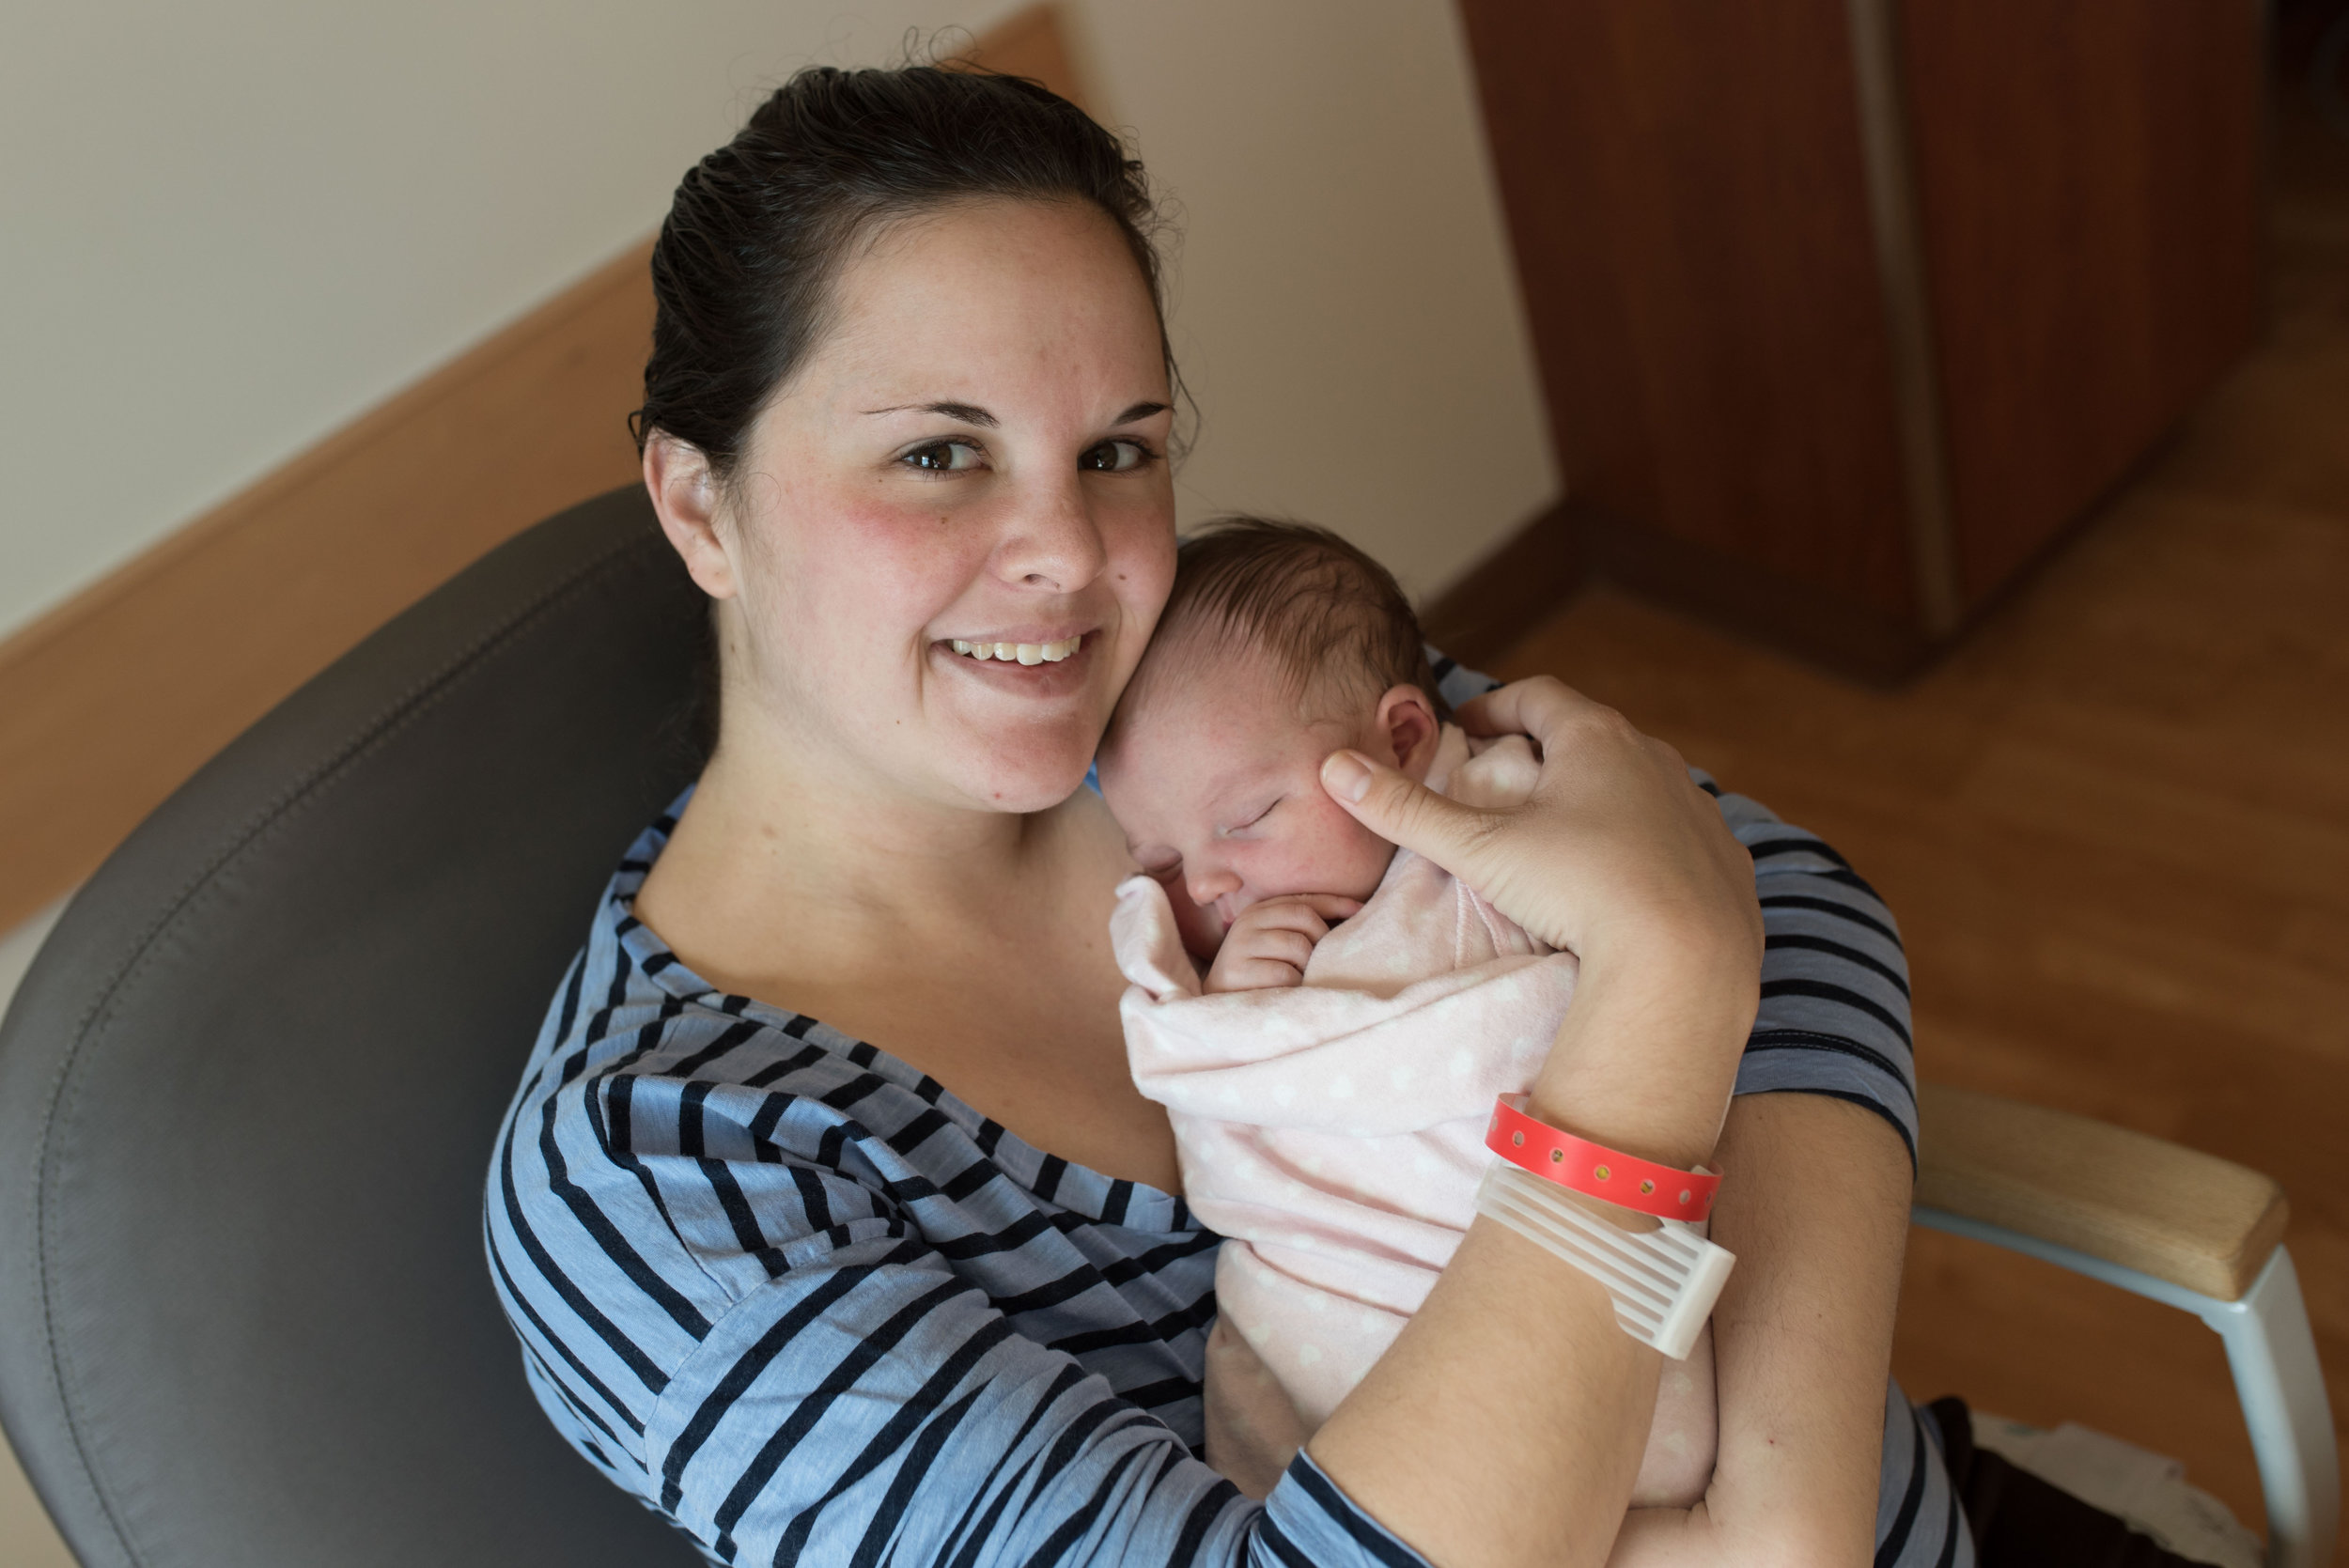 Smiling mother holds her newborn baby for a hospital photo session in Jacksonville, Florida.